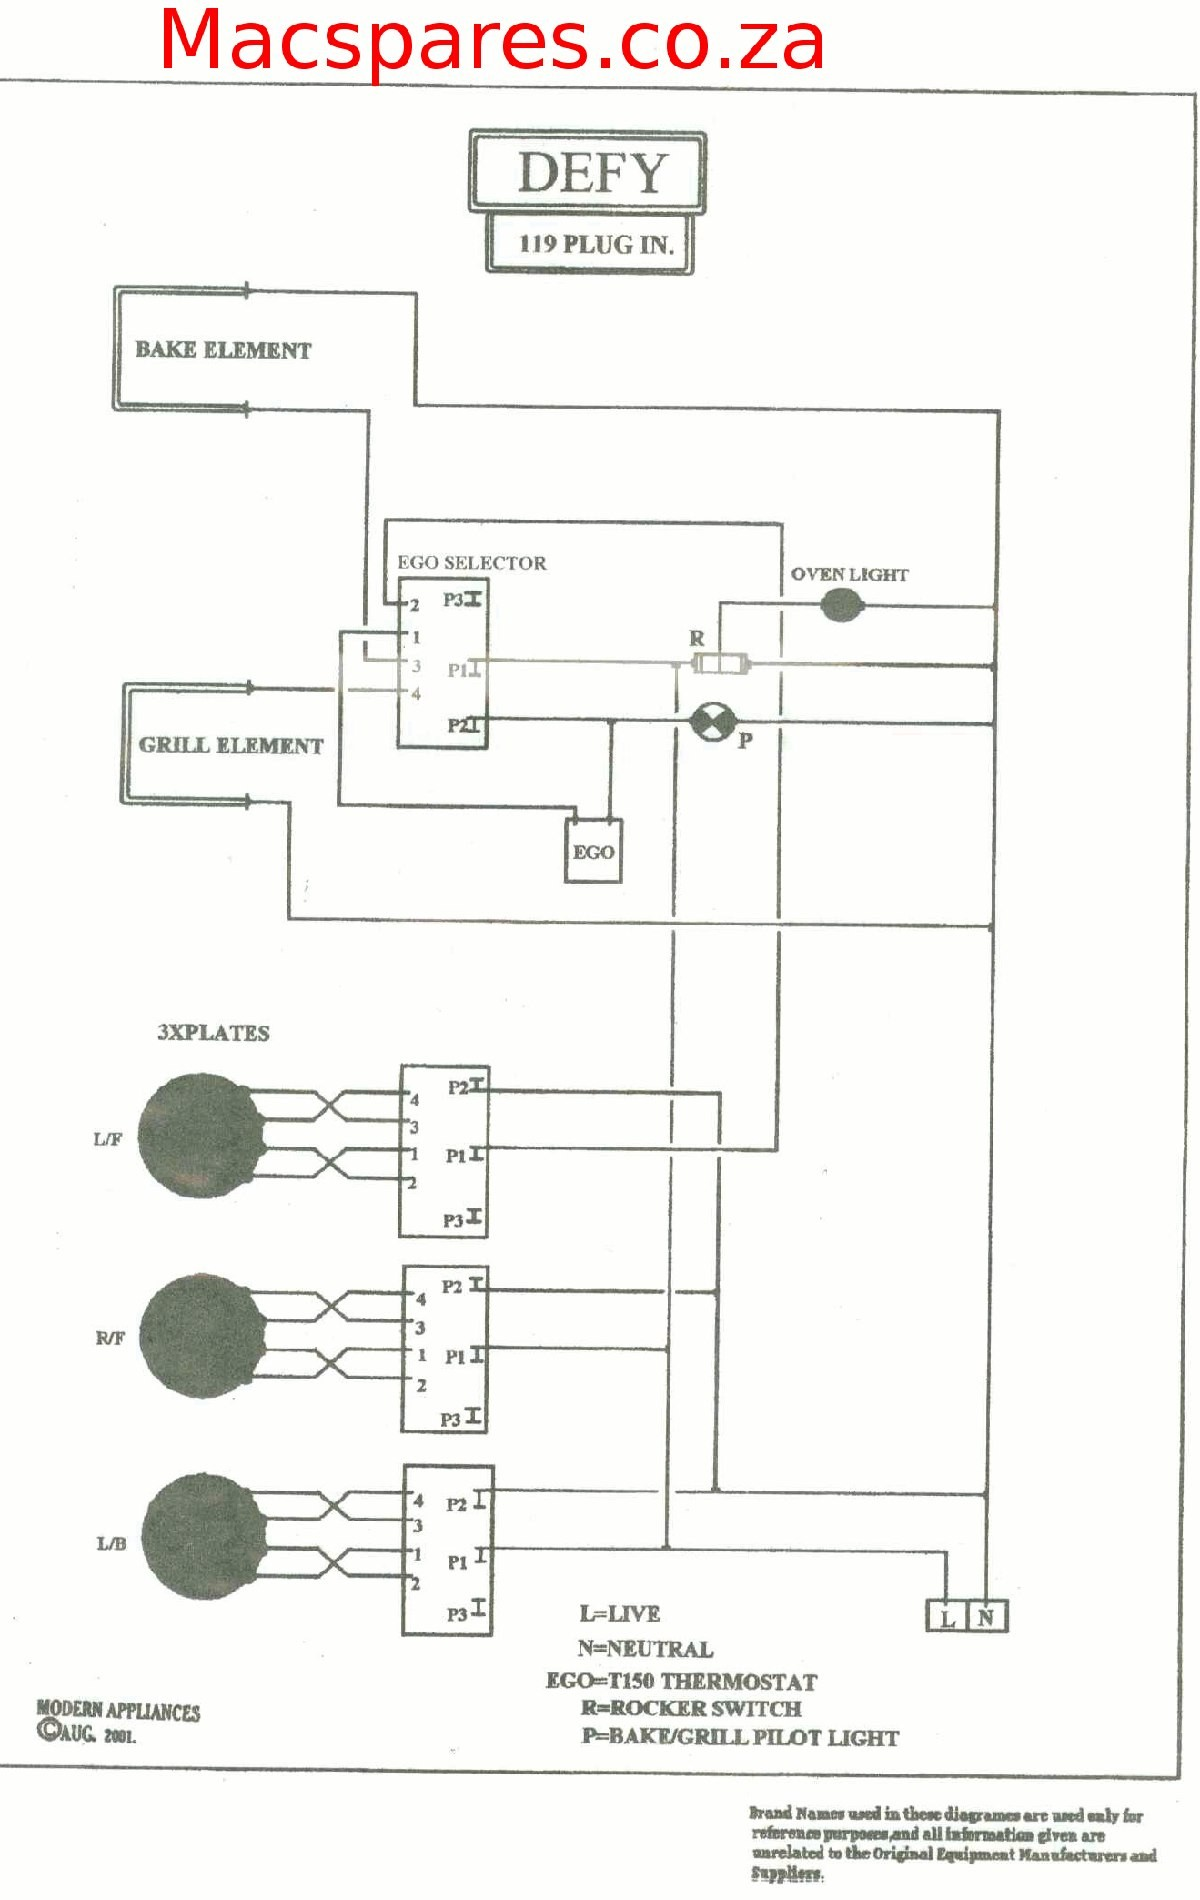 Ge Hotpoint Range Wiring Diagram Guide And Troubleshooting Of Electric Dryer Oven Diagrams Rh 54 Crocodilecruisedarwin Com Ranges Gas